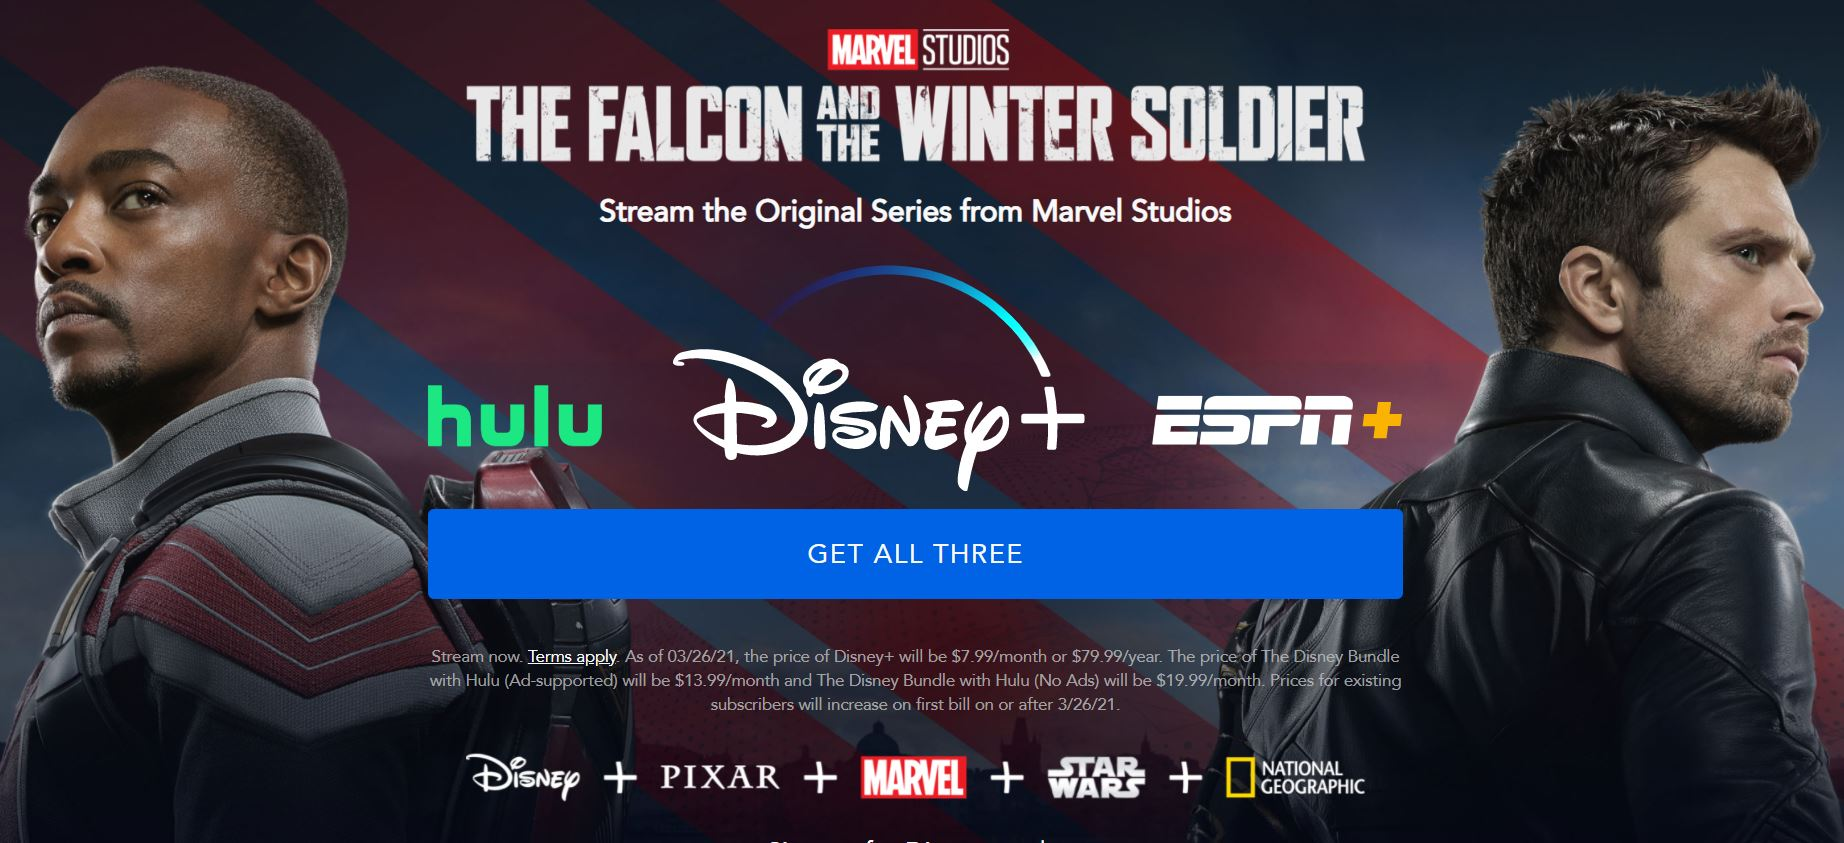 Disney Plus Falcon And The Winter Soldier Screenshot